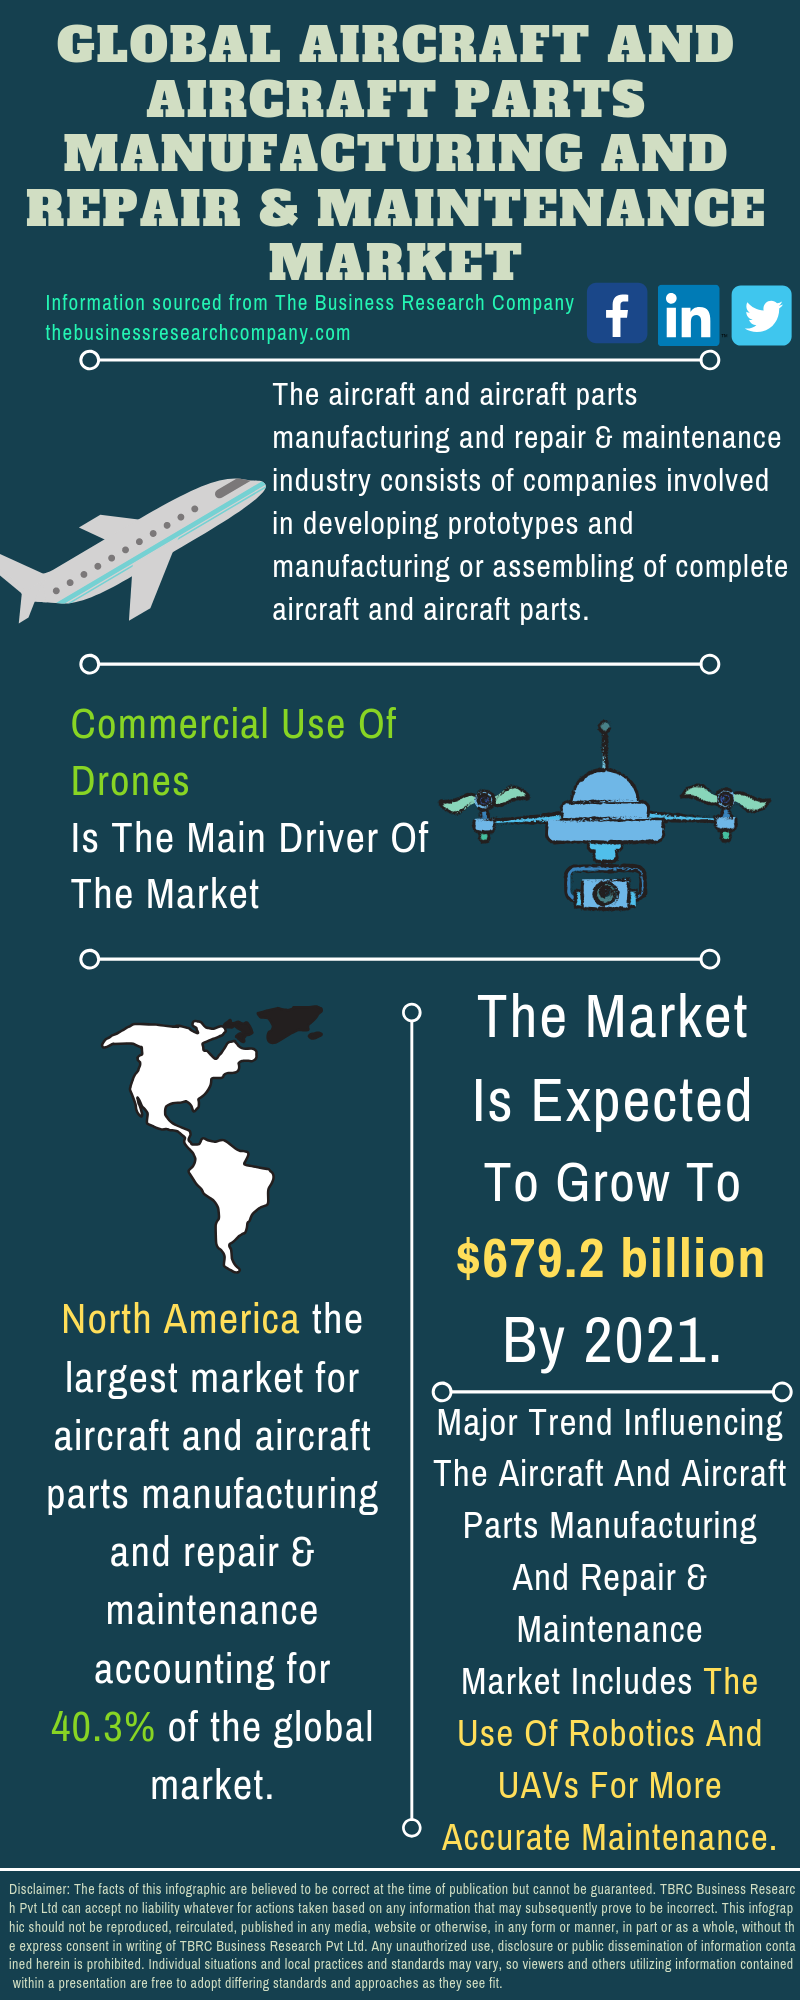 Global Aircraft And Aircraft Parts Manufacturing And Repair Maintenance Market Research Report Repair And Maintenance Research Companies Repair